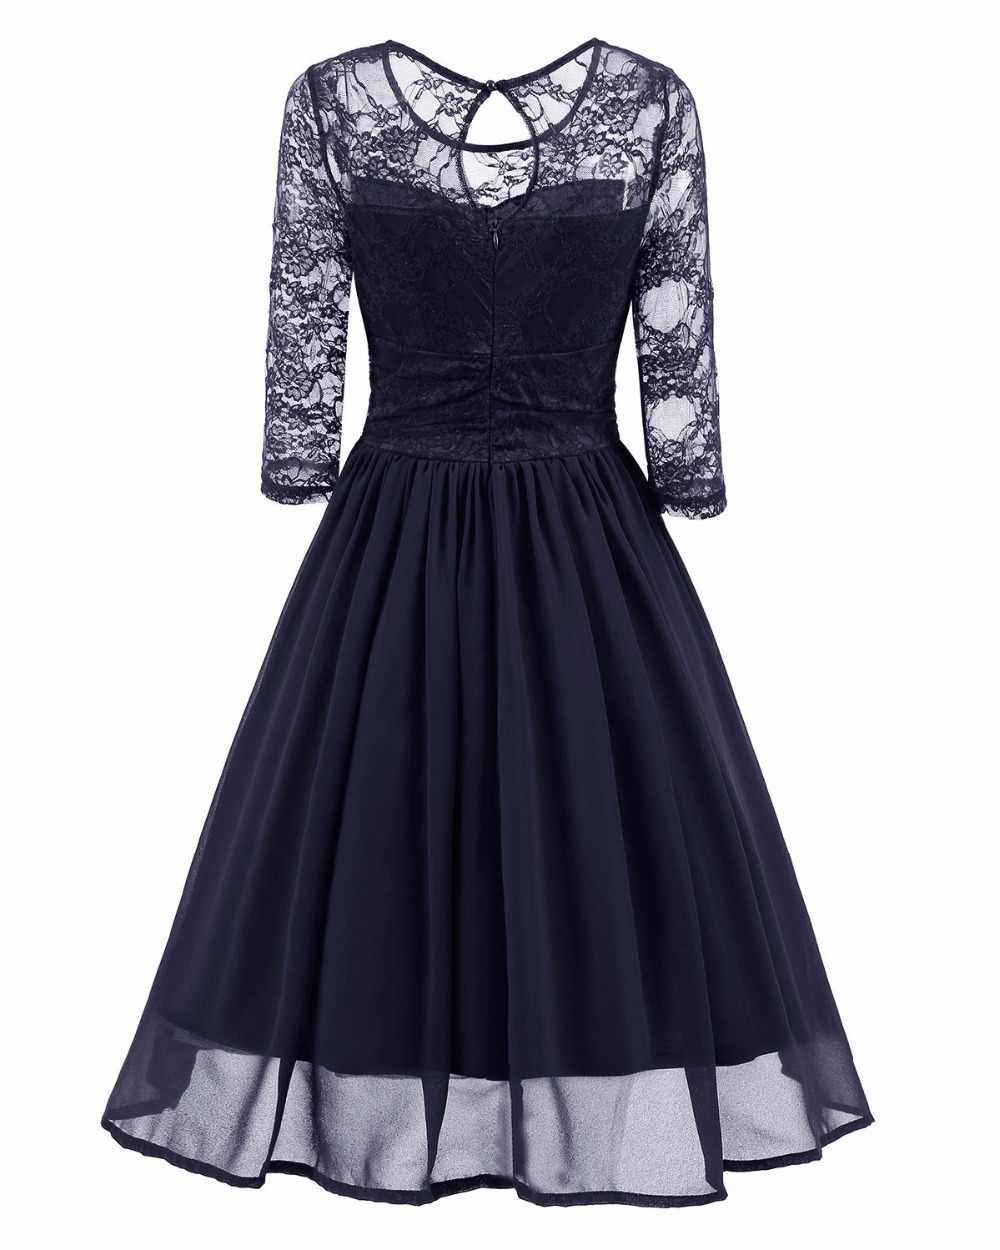 Robe De Soriee New Bridesmaid Dresses Short Navy Blue Lace Long Sleeve Elegant Fall Winter Purple Red Bride Banquet Formal Gown